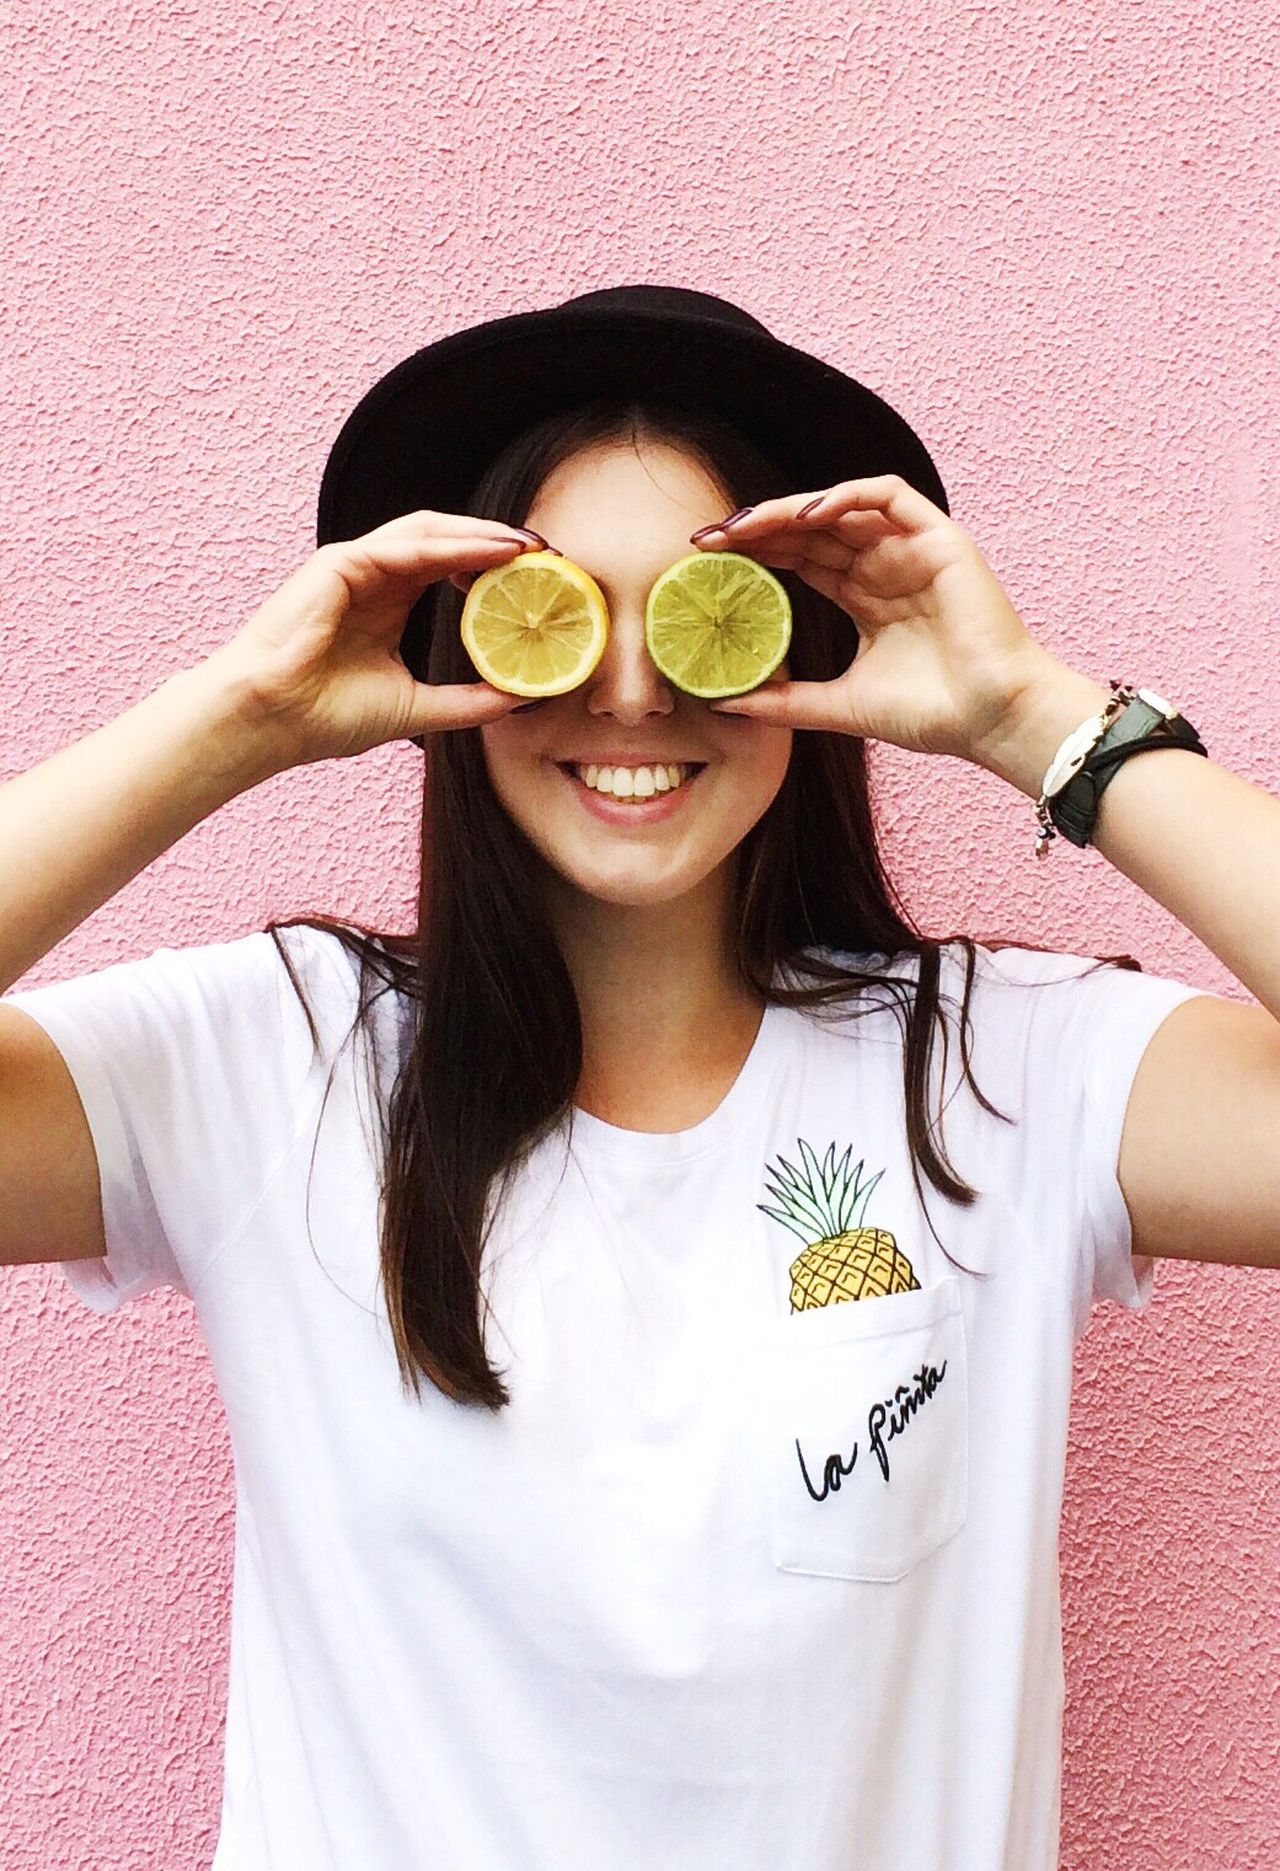 Young Women Long Hair Sunglasses Young Adult Front View Casual Clothing Person Looking At Camera Portrait Cheerful Beauty Medium-length Hair Posing Carefree Smile Smiling